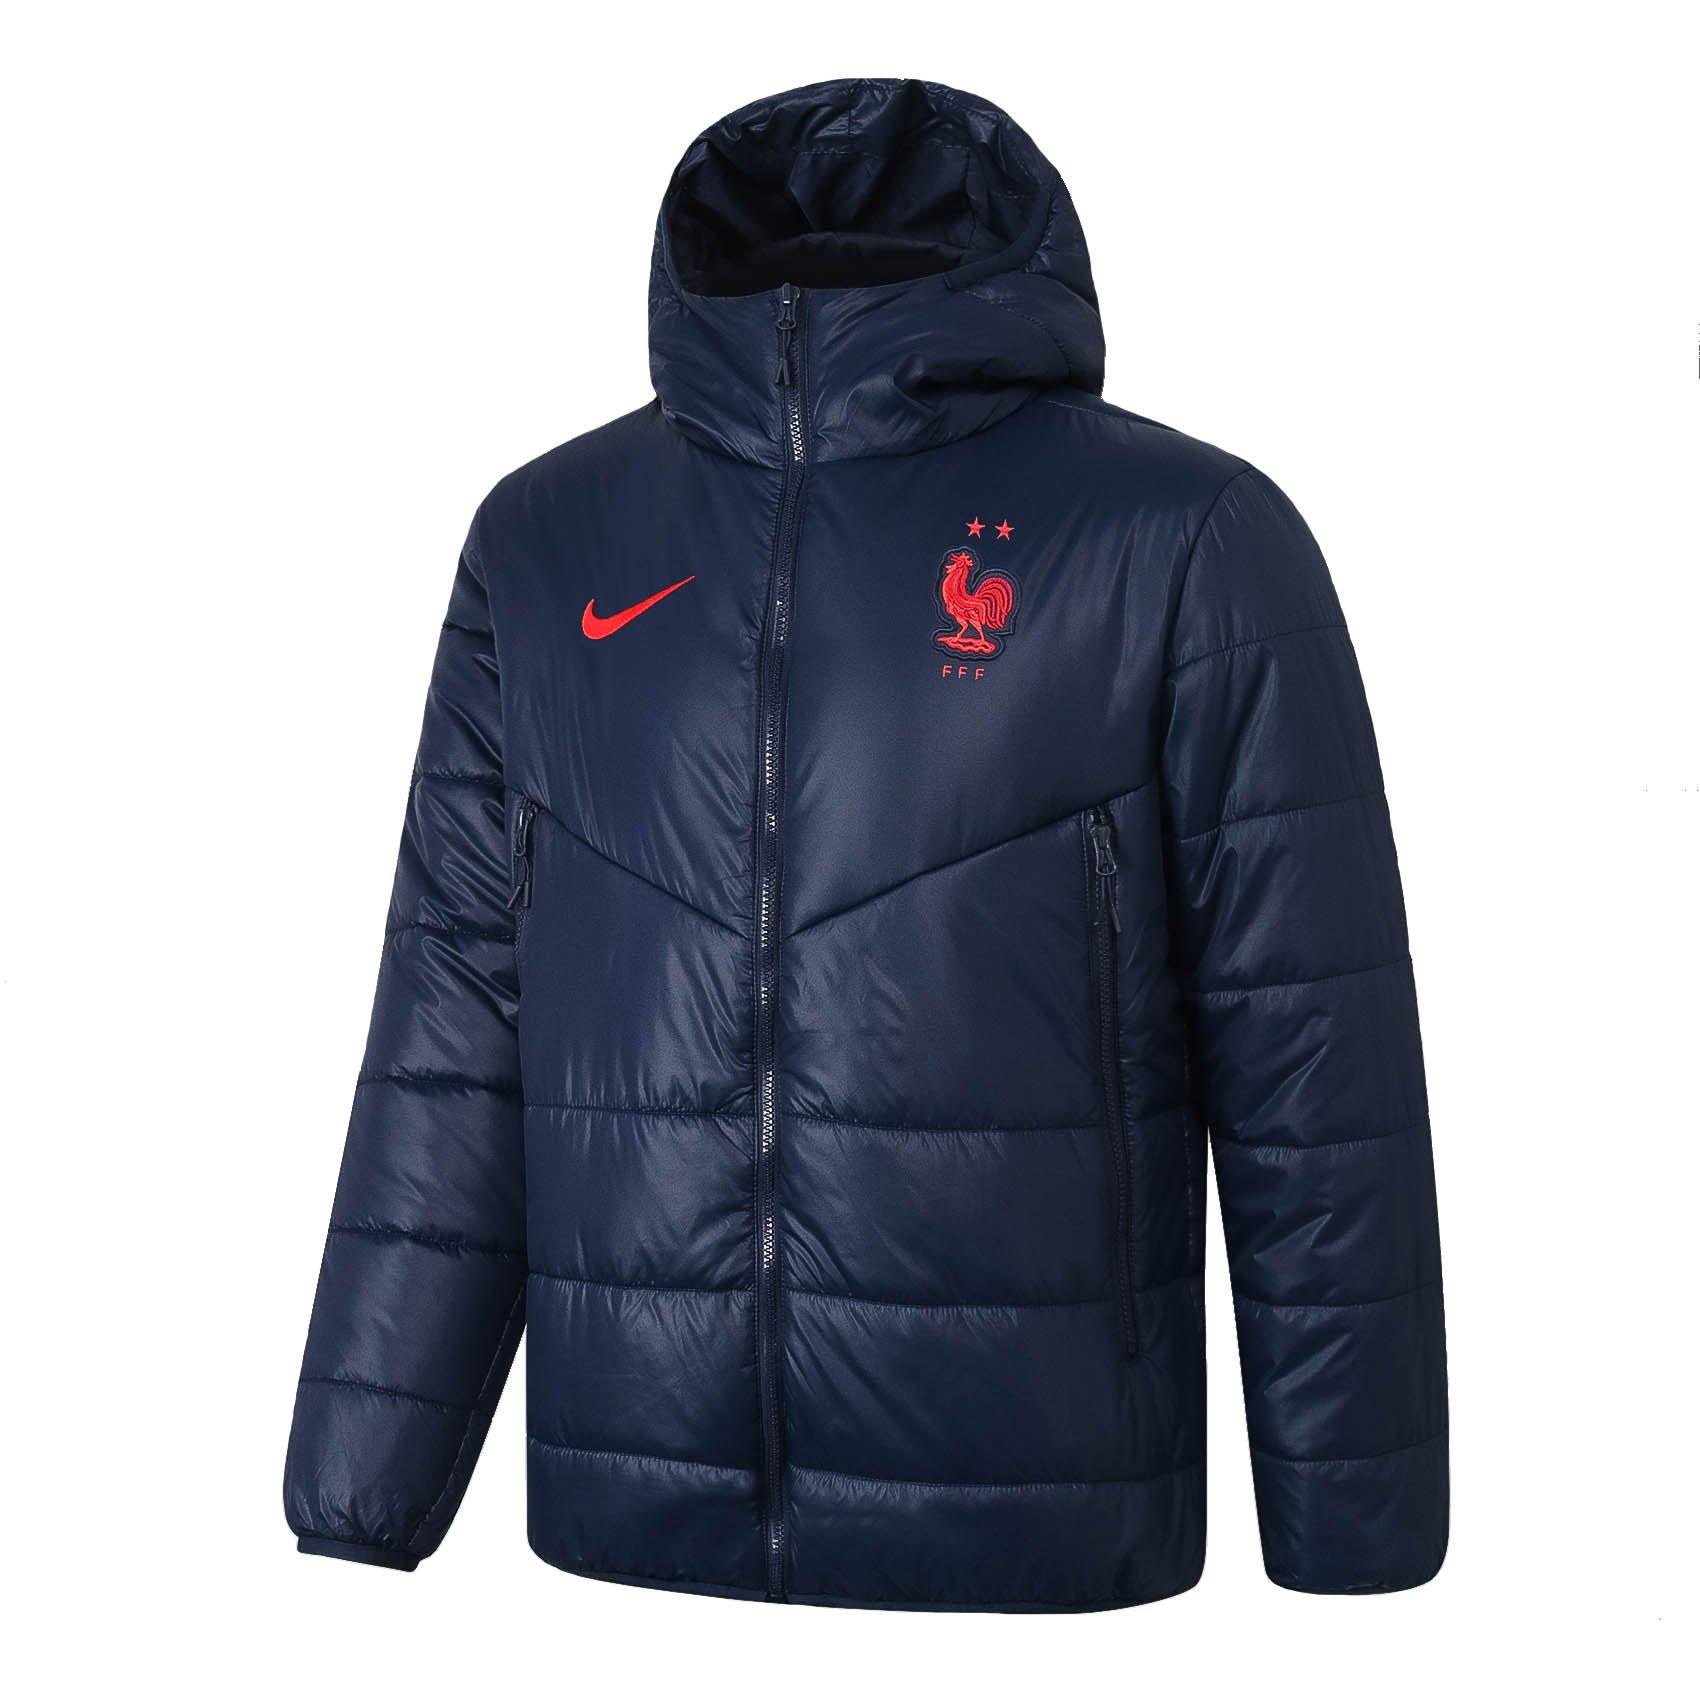 Doudoune Equipe de France Nike Rouge 2021 Homme FFF Foot Online freeshipping - Foot Online